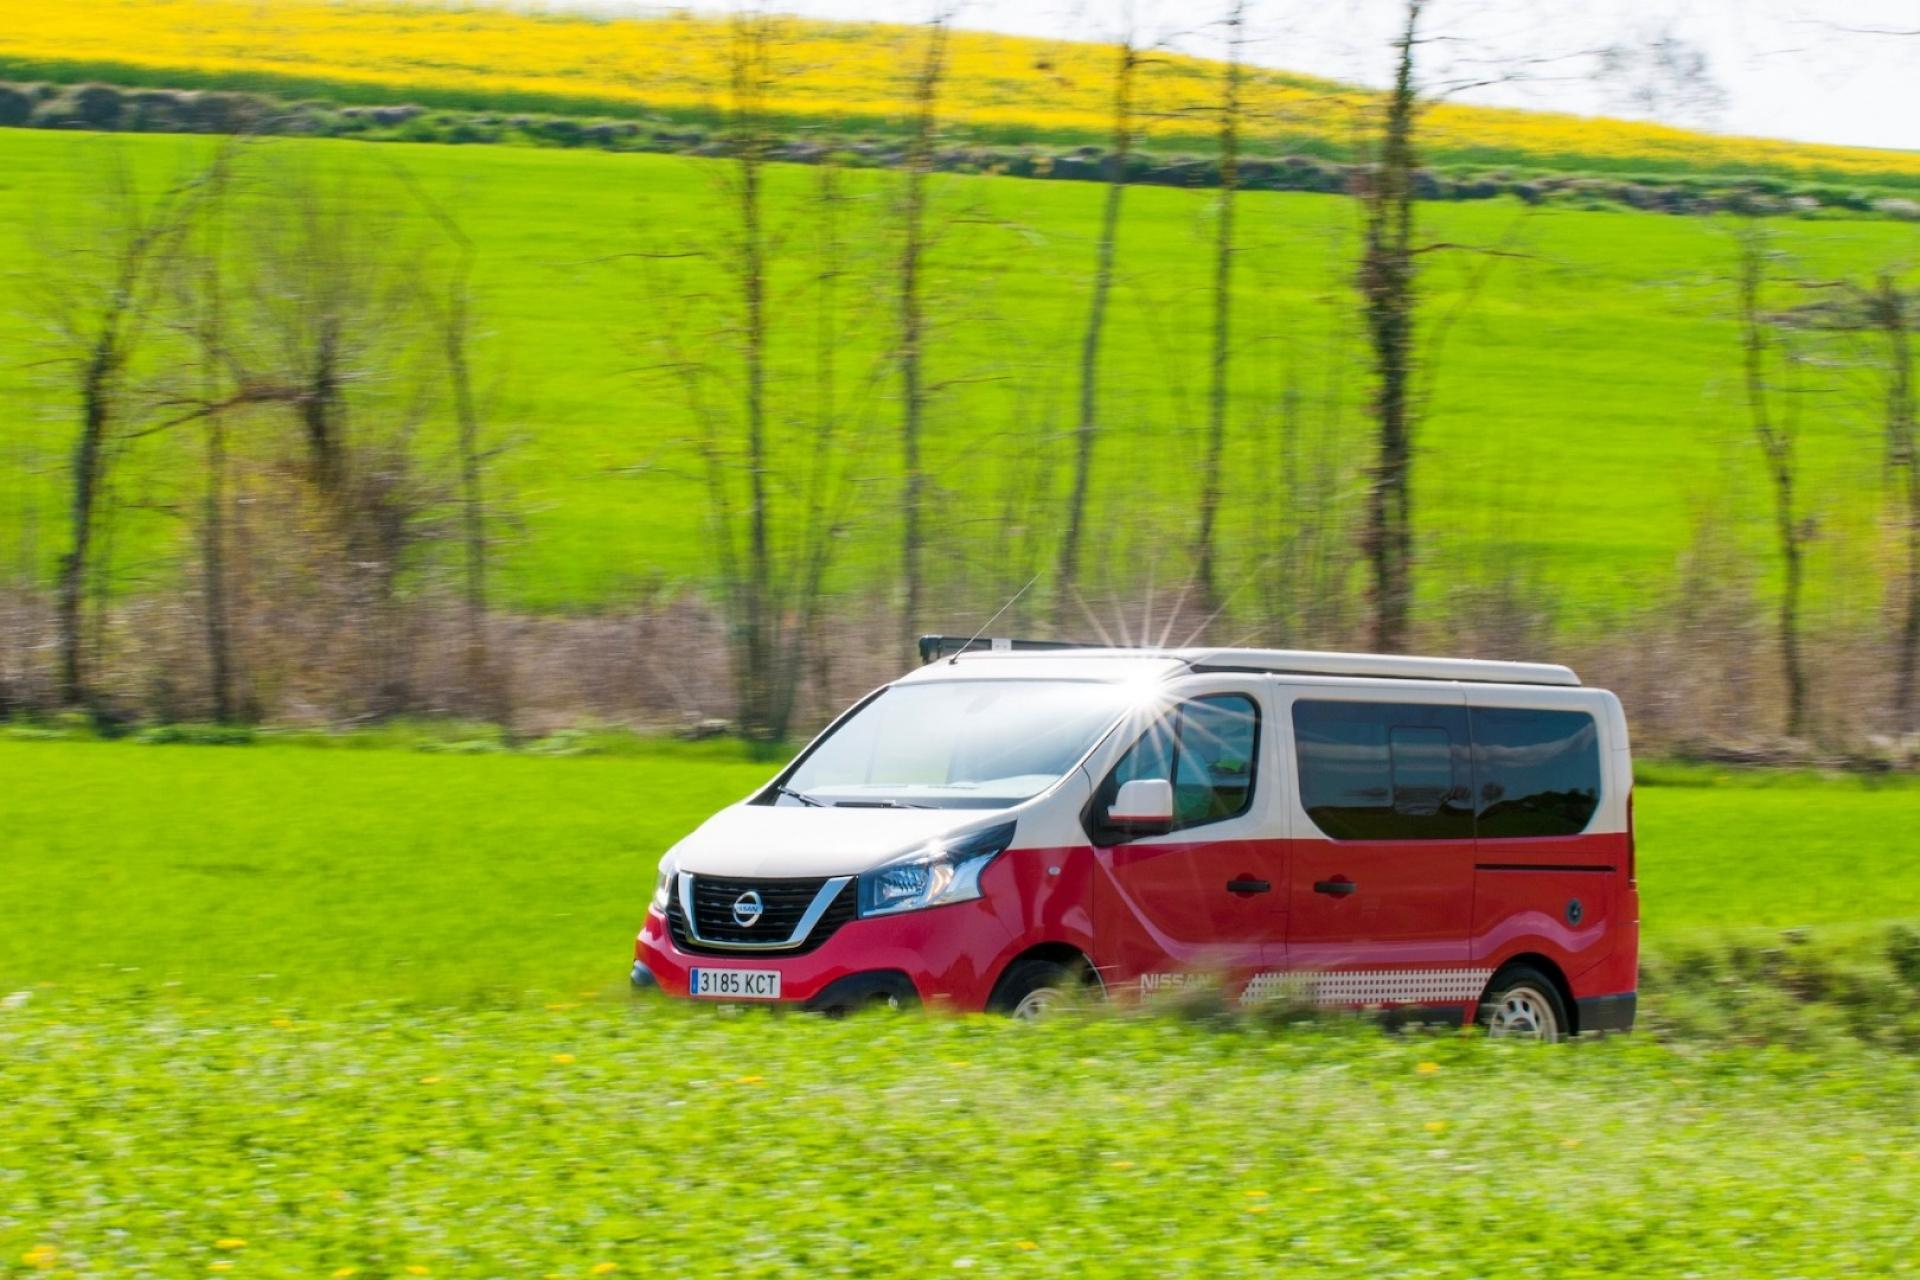 Nissan camper motor show madryt hellocamping news bok czerwony